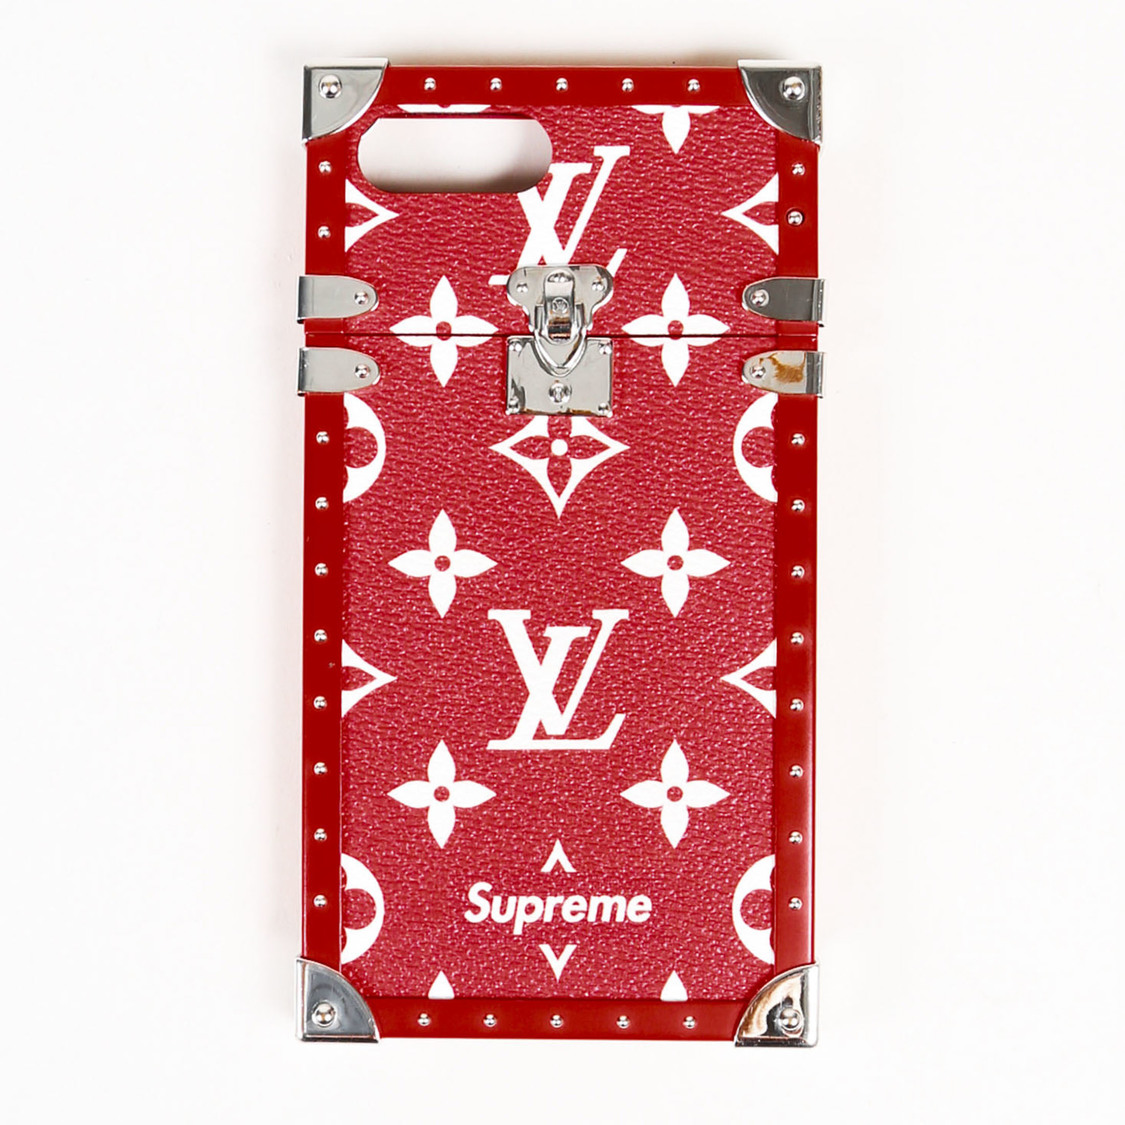 a057aedb9e73 Details about Louis Vuitton x Supreme Red Monogram Coated Canvas